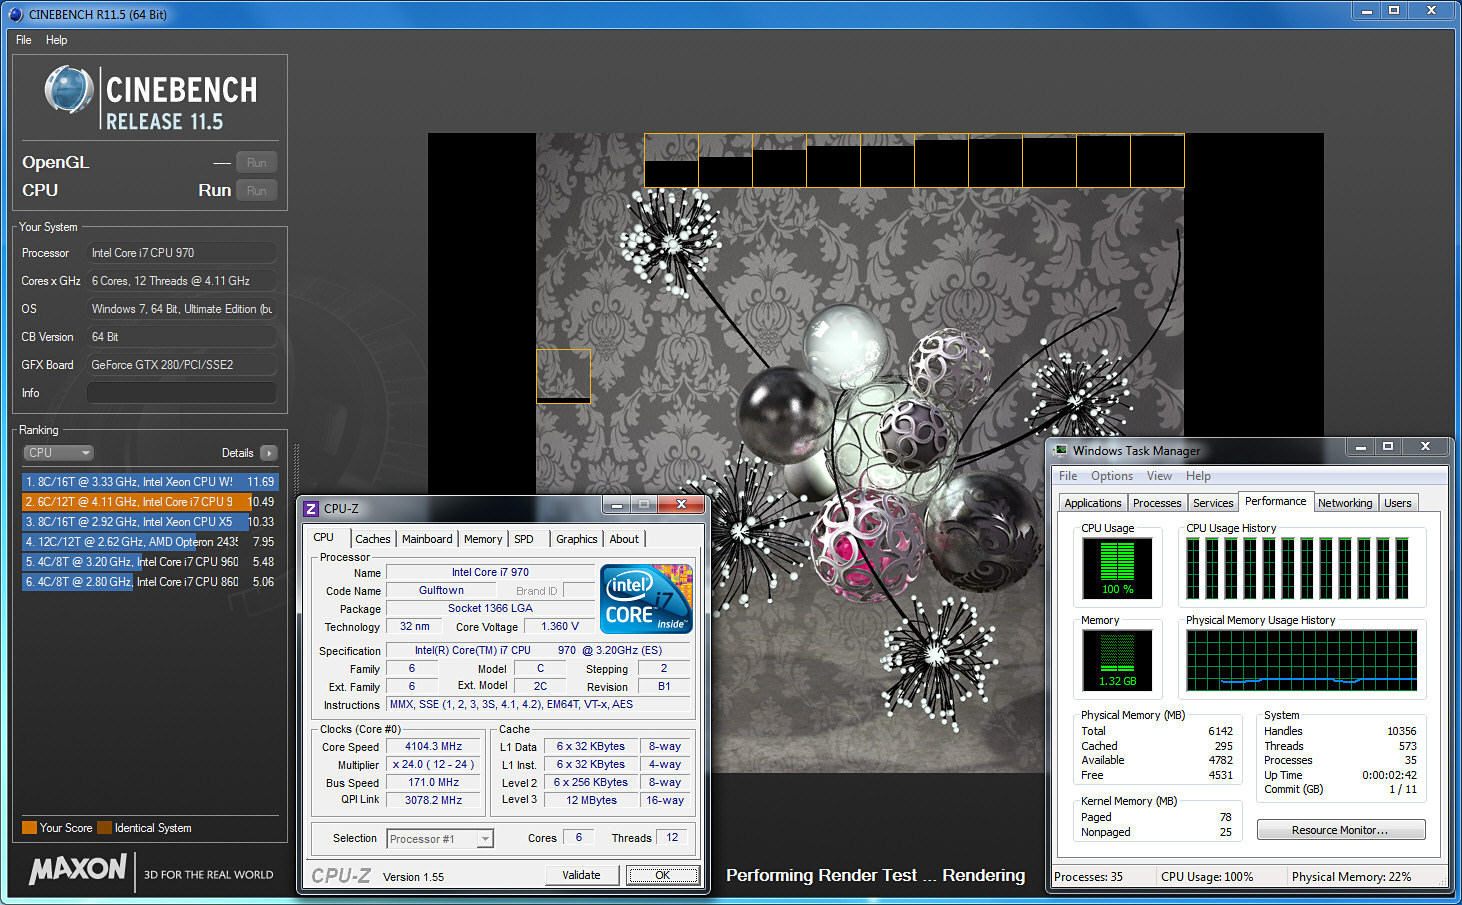 big_cinebench-oc.jpg